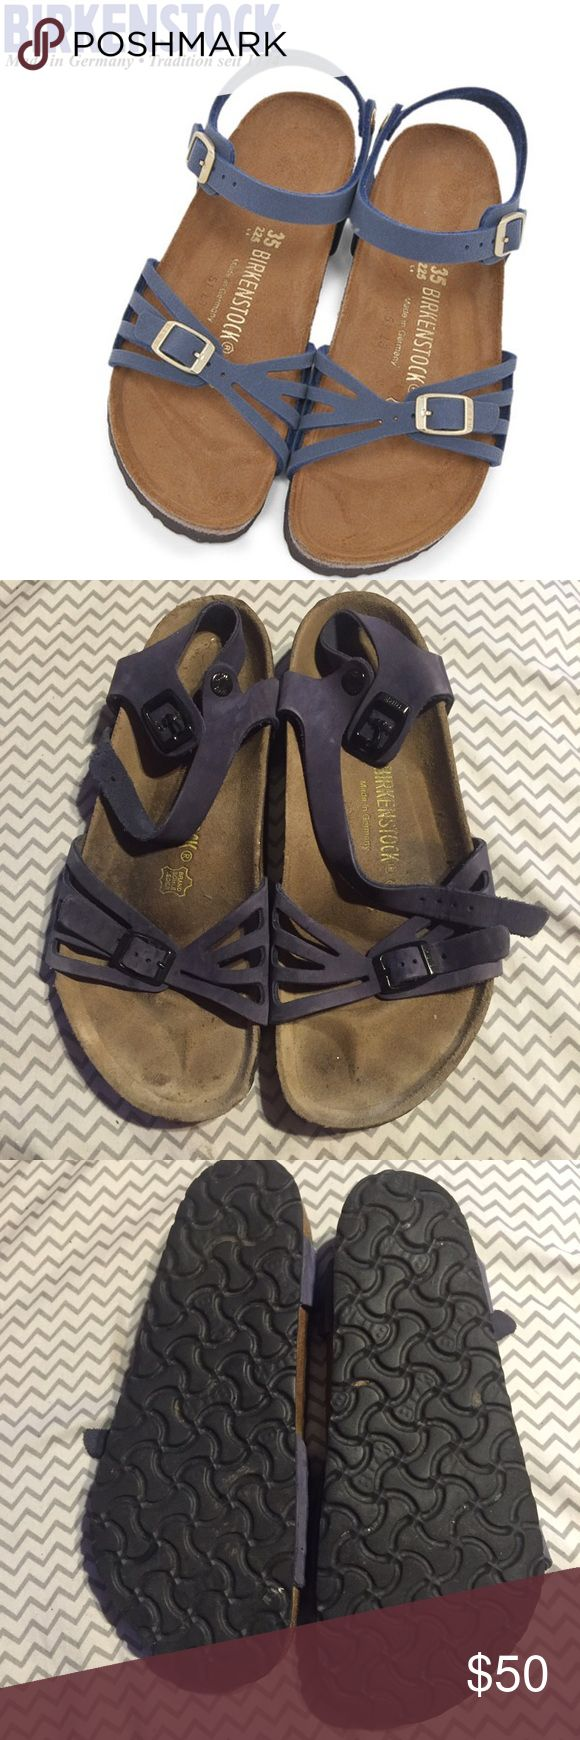 Birkenstock Bali navy blue sandals✨ Navy Blue Color   sz 39   very cute style w/ a strap   gently used Birkenstock Shoes Sandals